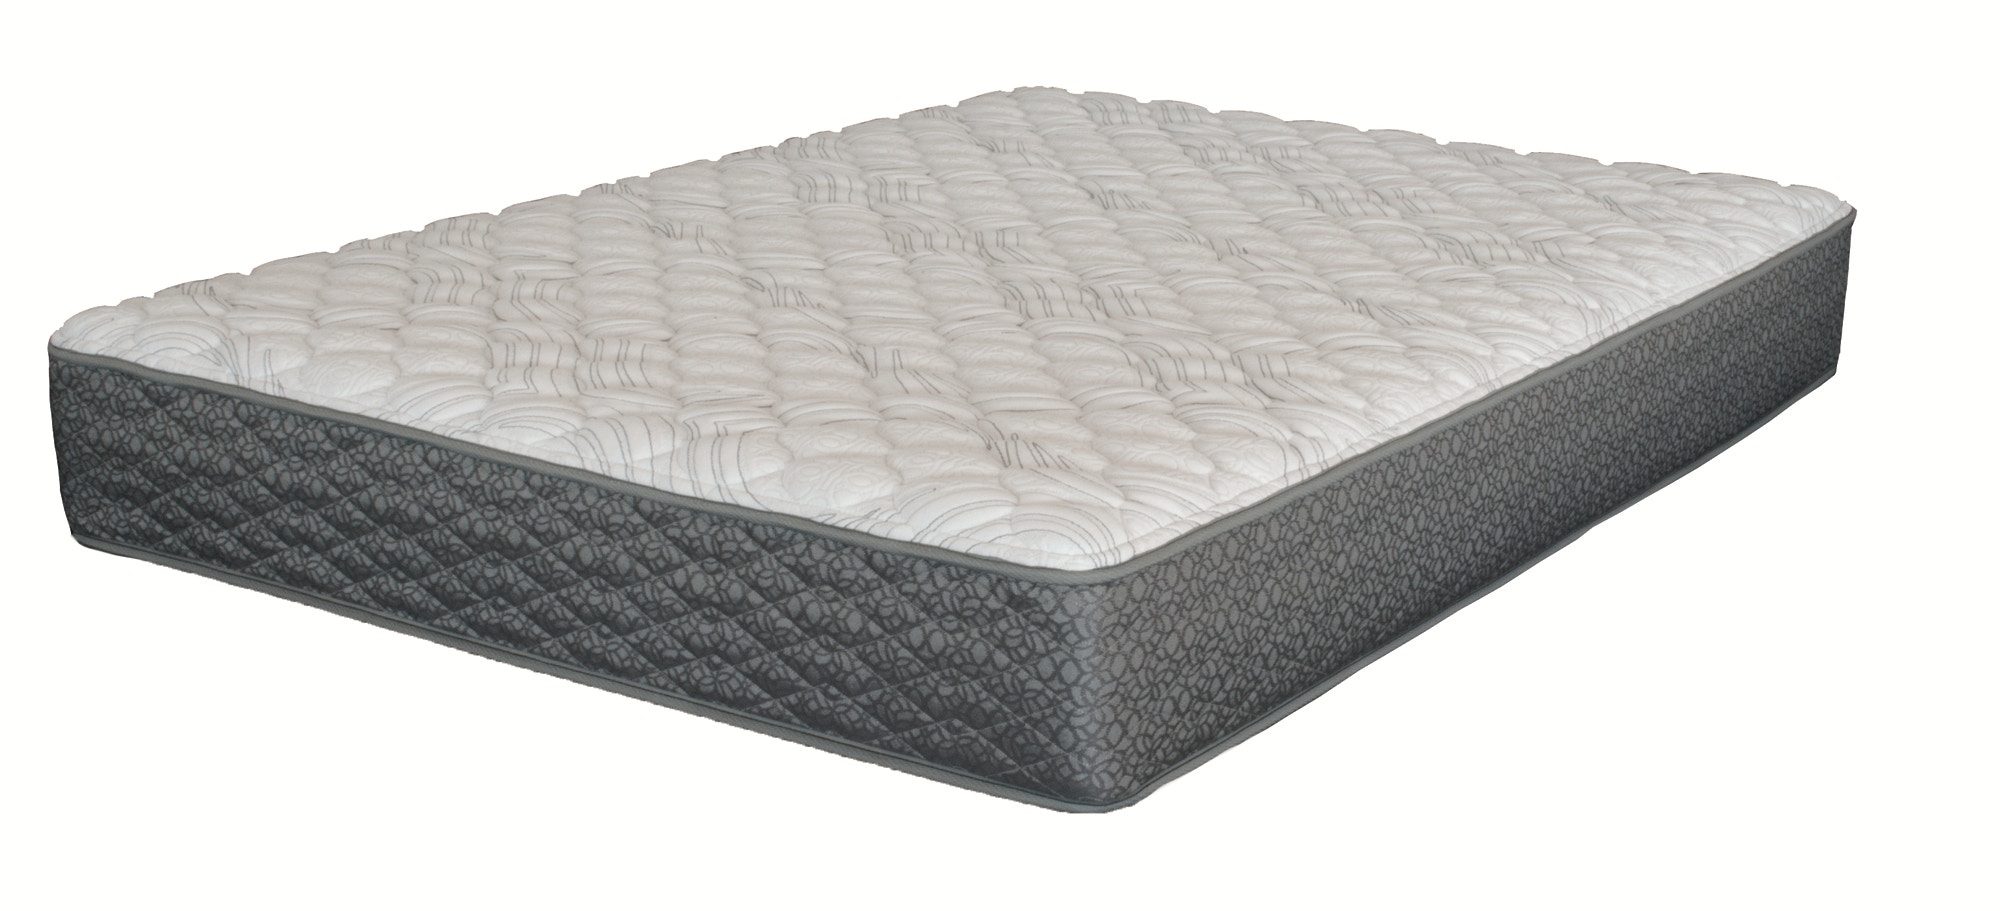 Serta Mattress Prices Serta Perfect Sleeper Wynstone Ii Cushion Firm Eurotop Twin Mattress Set